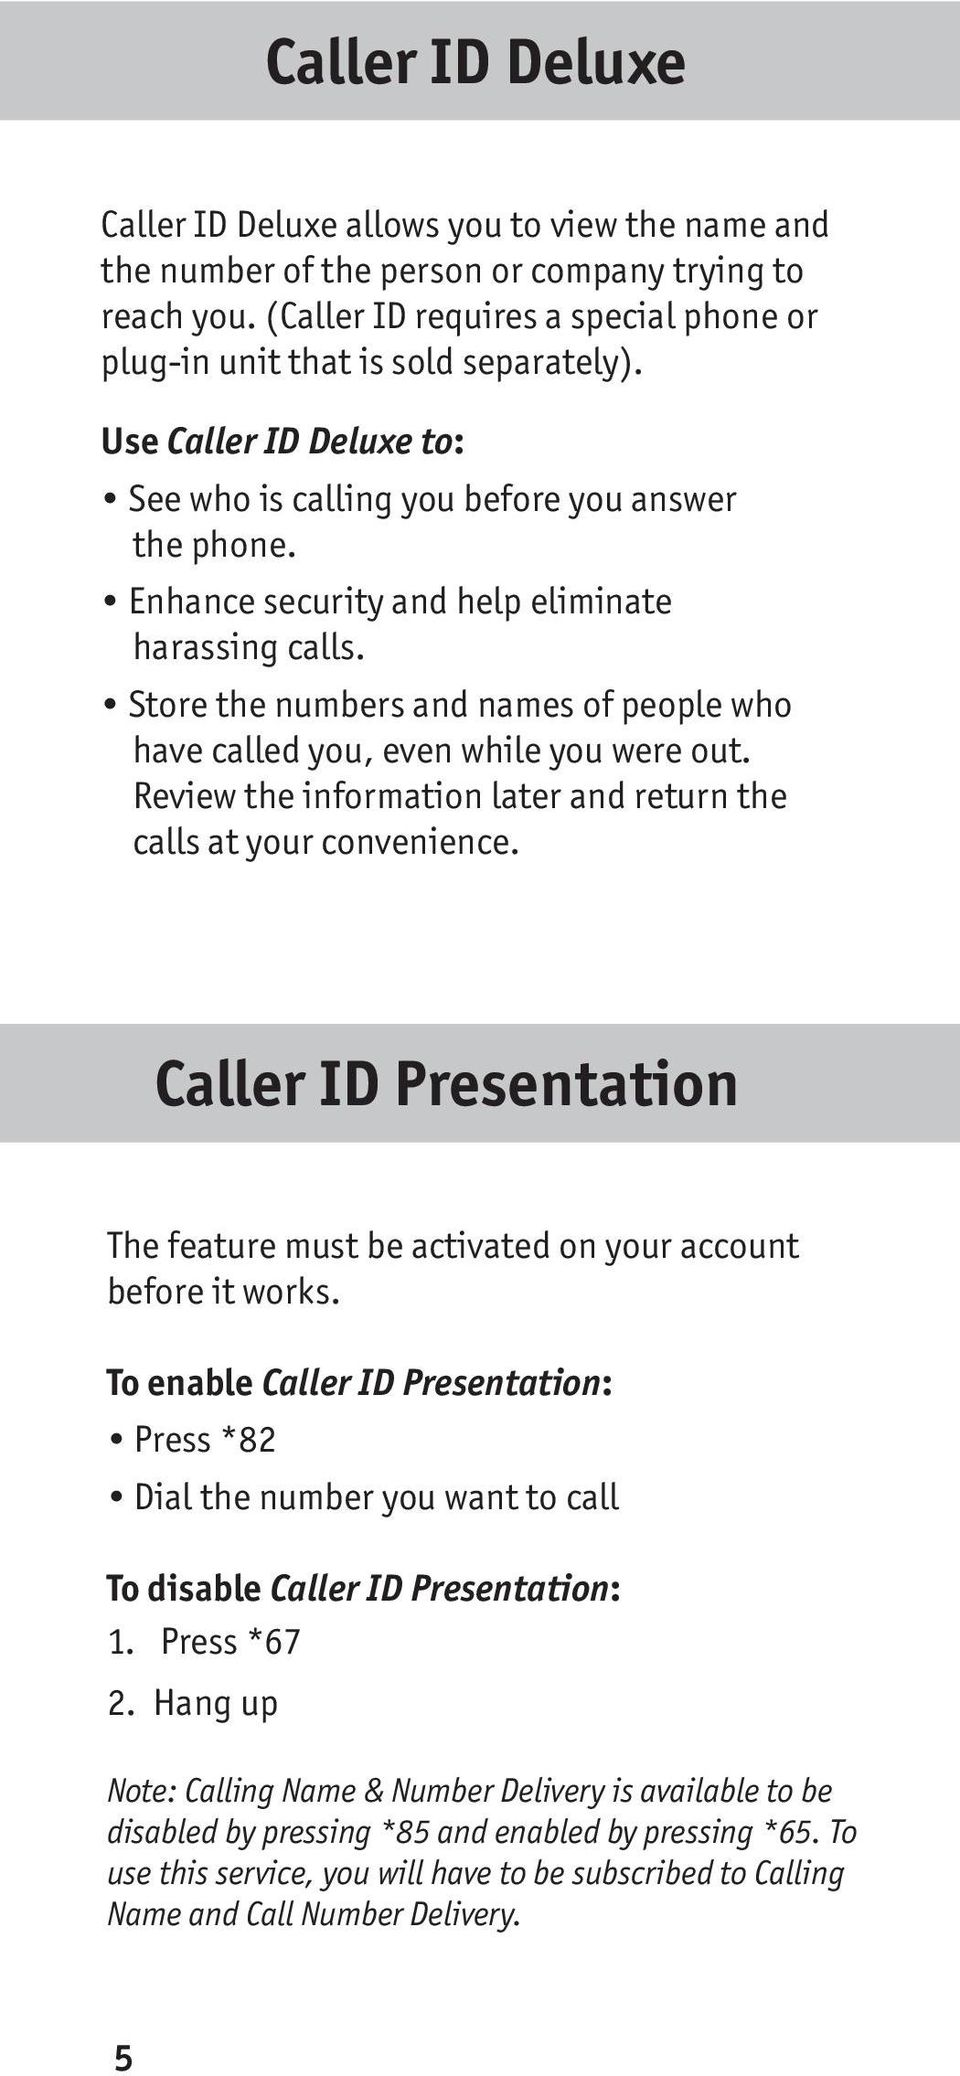 Store the numbers and names of people who have called you, even while you were out. Review the information later and return the calls at your convenience.